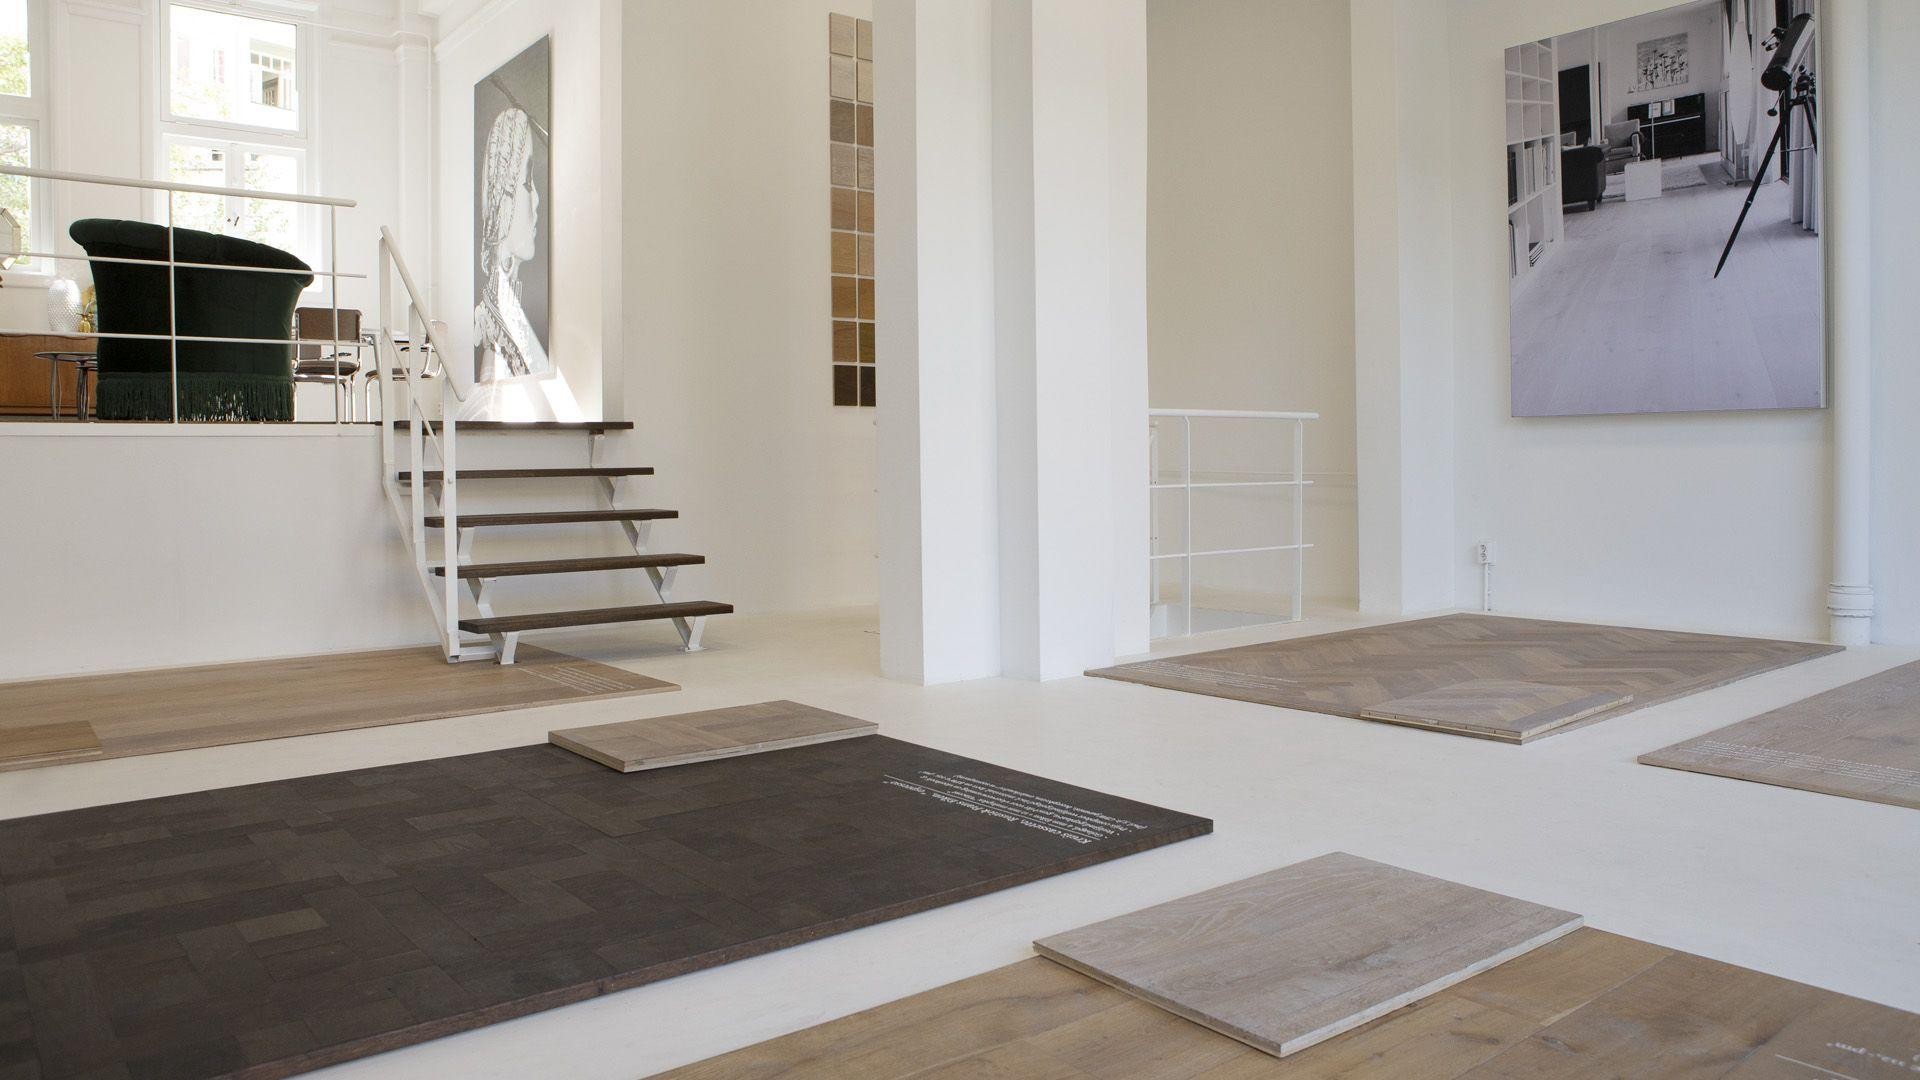 uipkes wood flooring amsterdam showroom